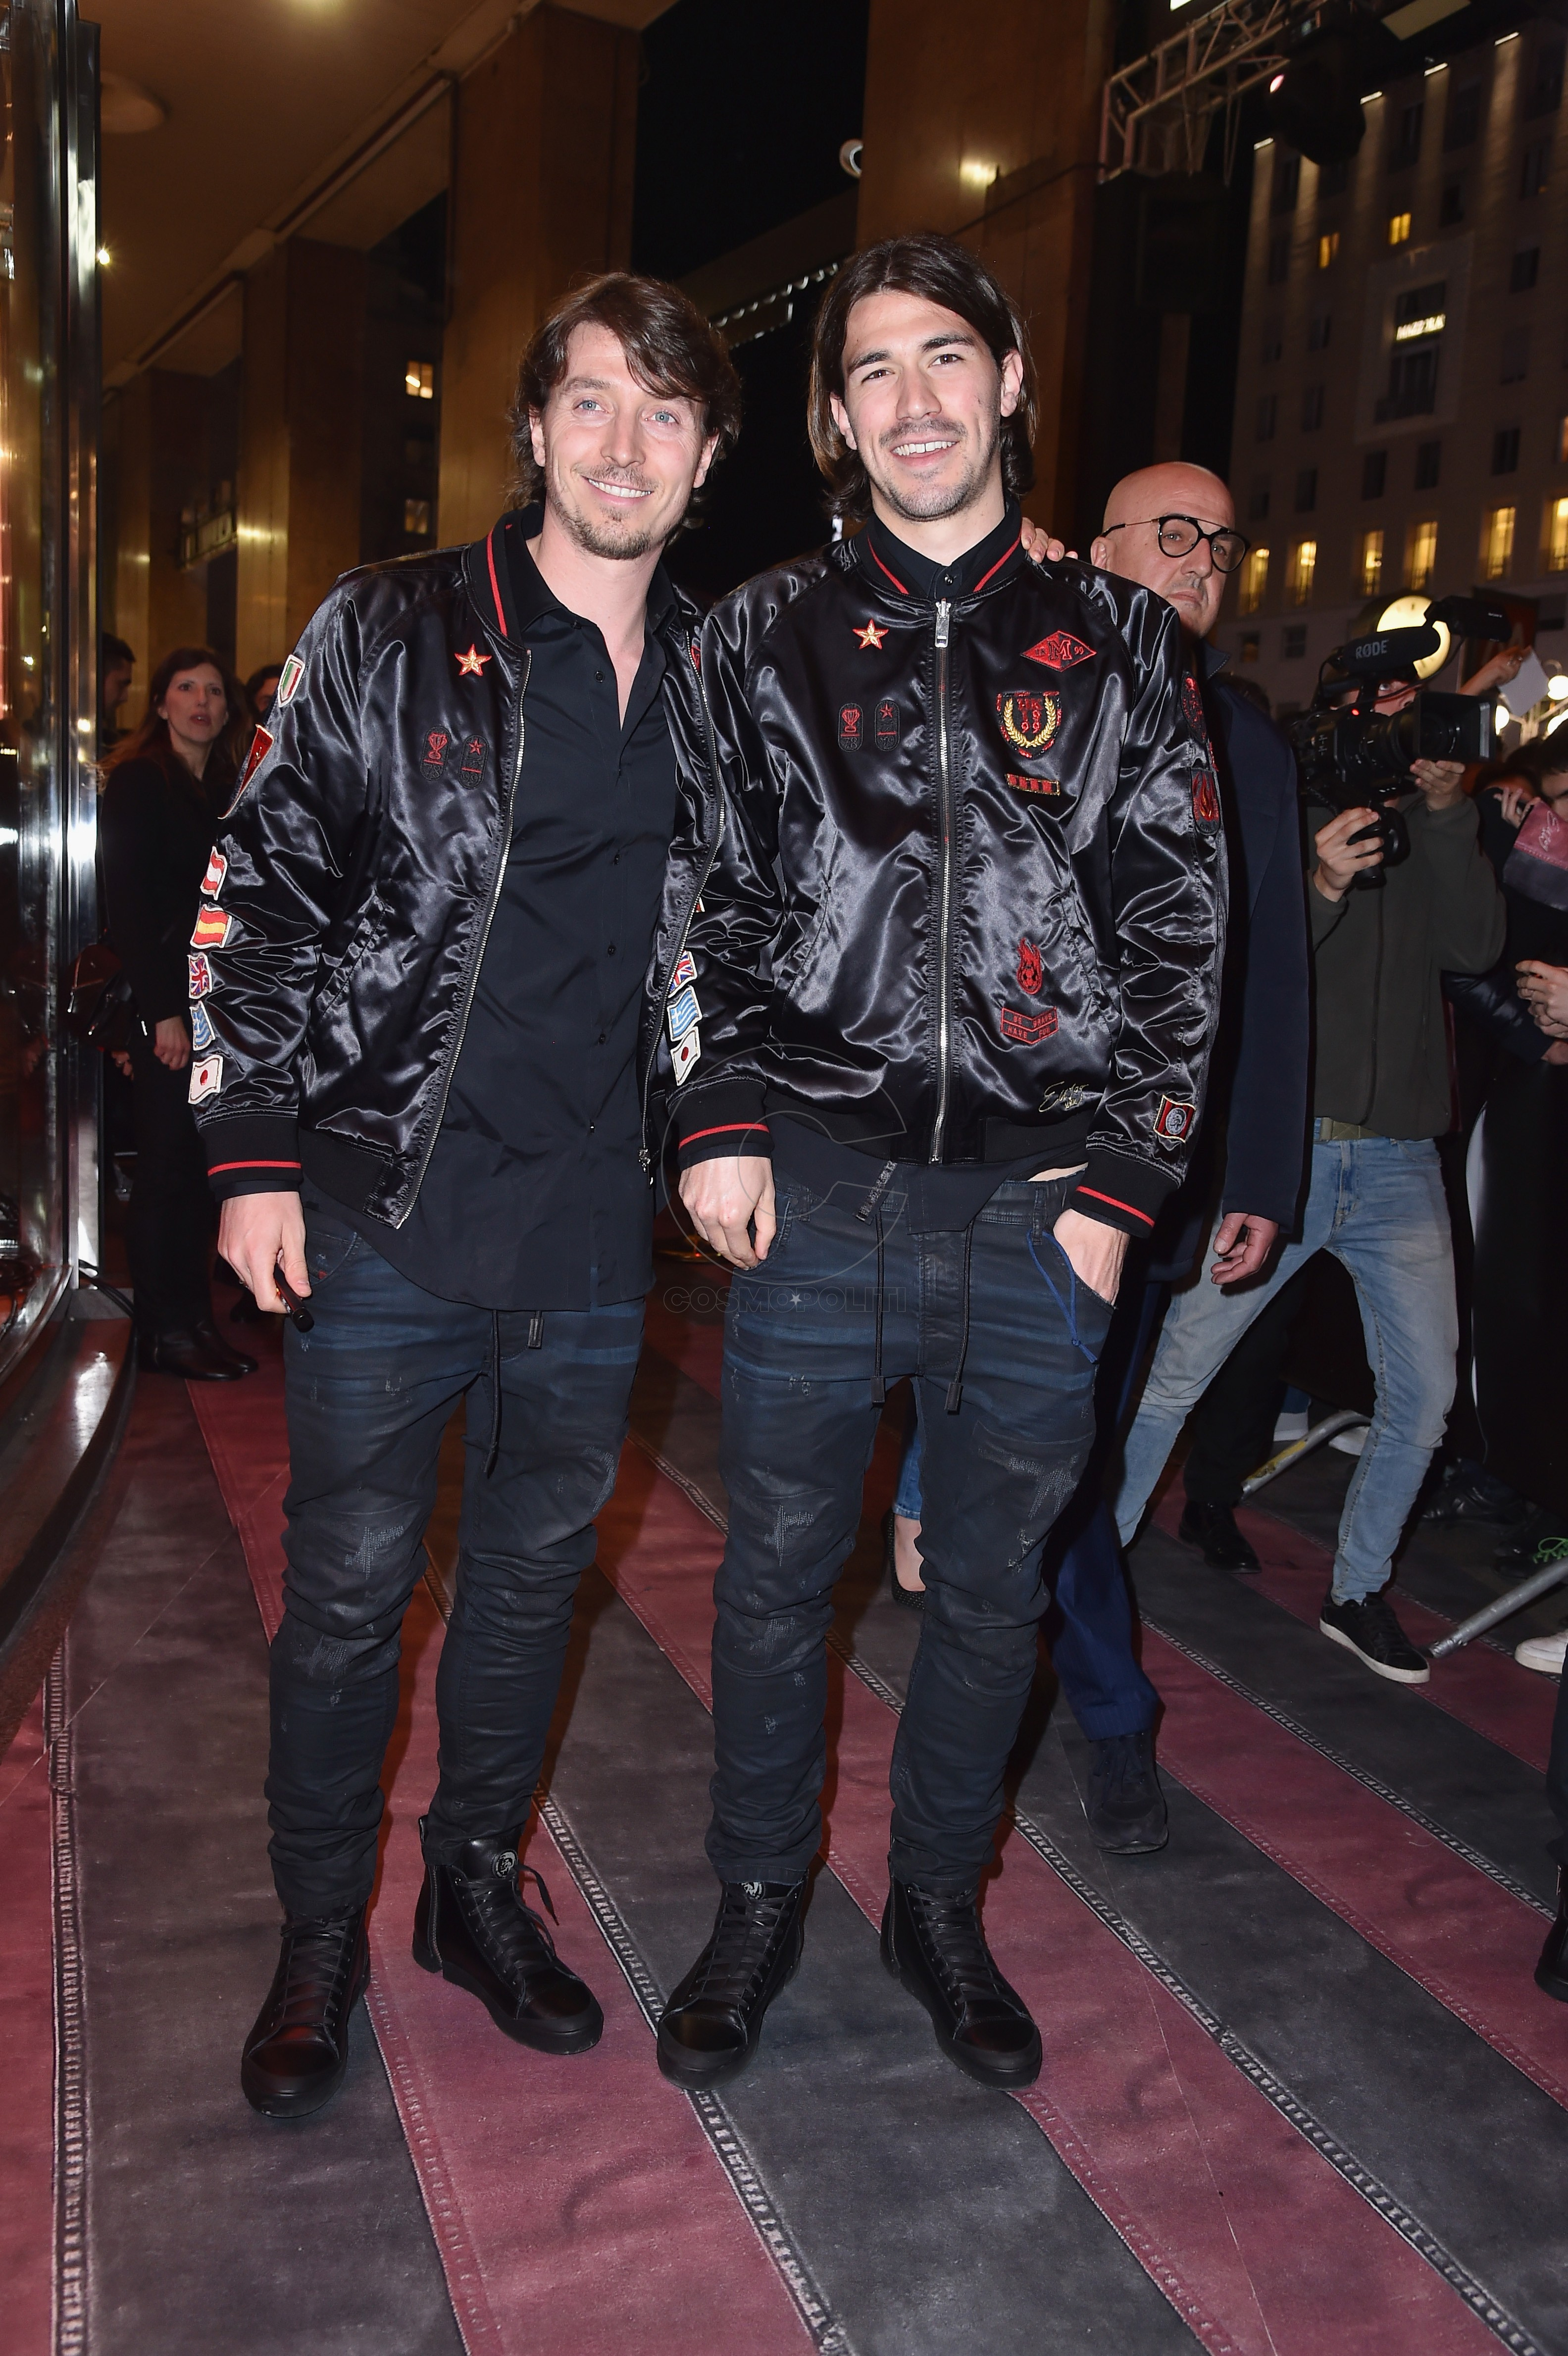 MILAN, ITALY - MARCH 14: Riccardo Montolivo and Alessio Romagnoli attend The New Bomber Presentation at the Diesel Store on March 14, 2017 in Milan, Italy. (Photo by Jacopo Raule/Getty Images for Diesel)